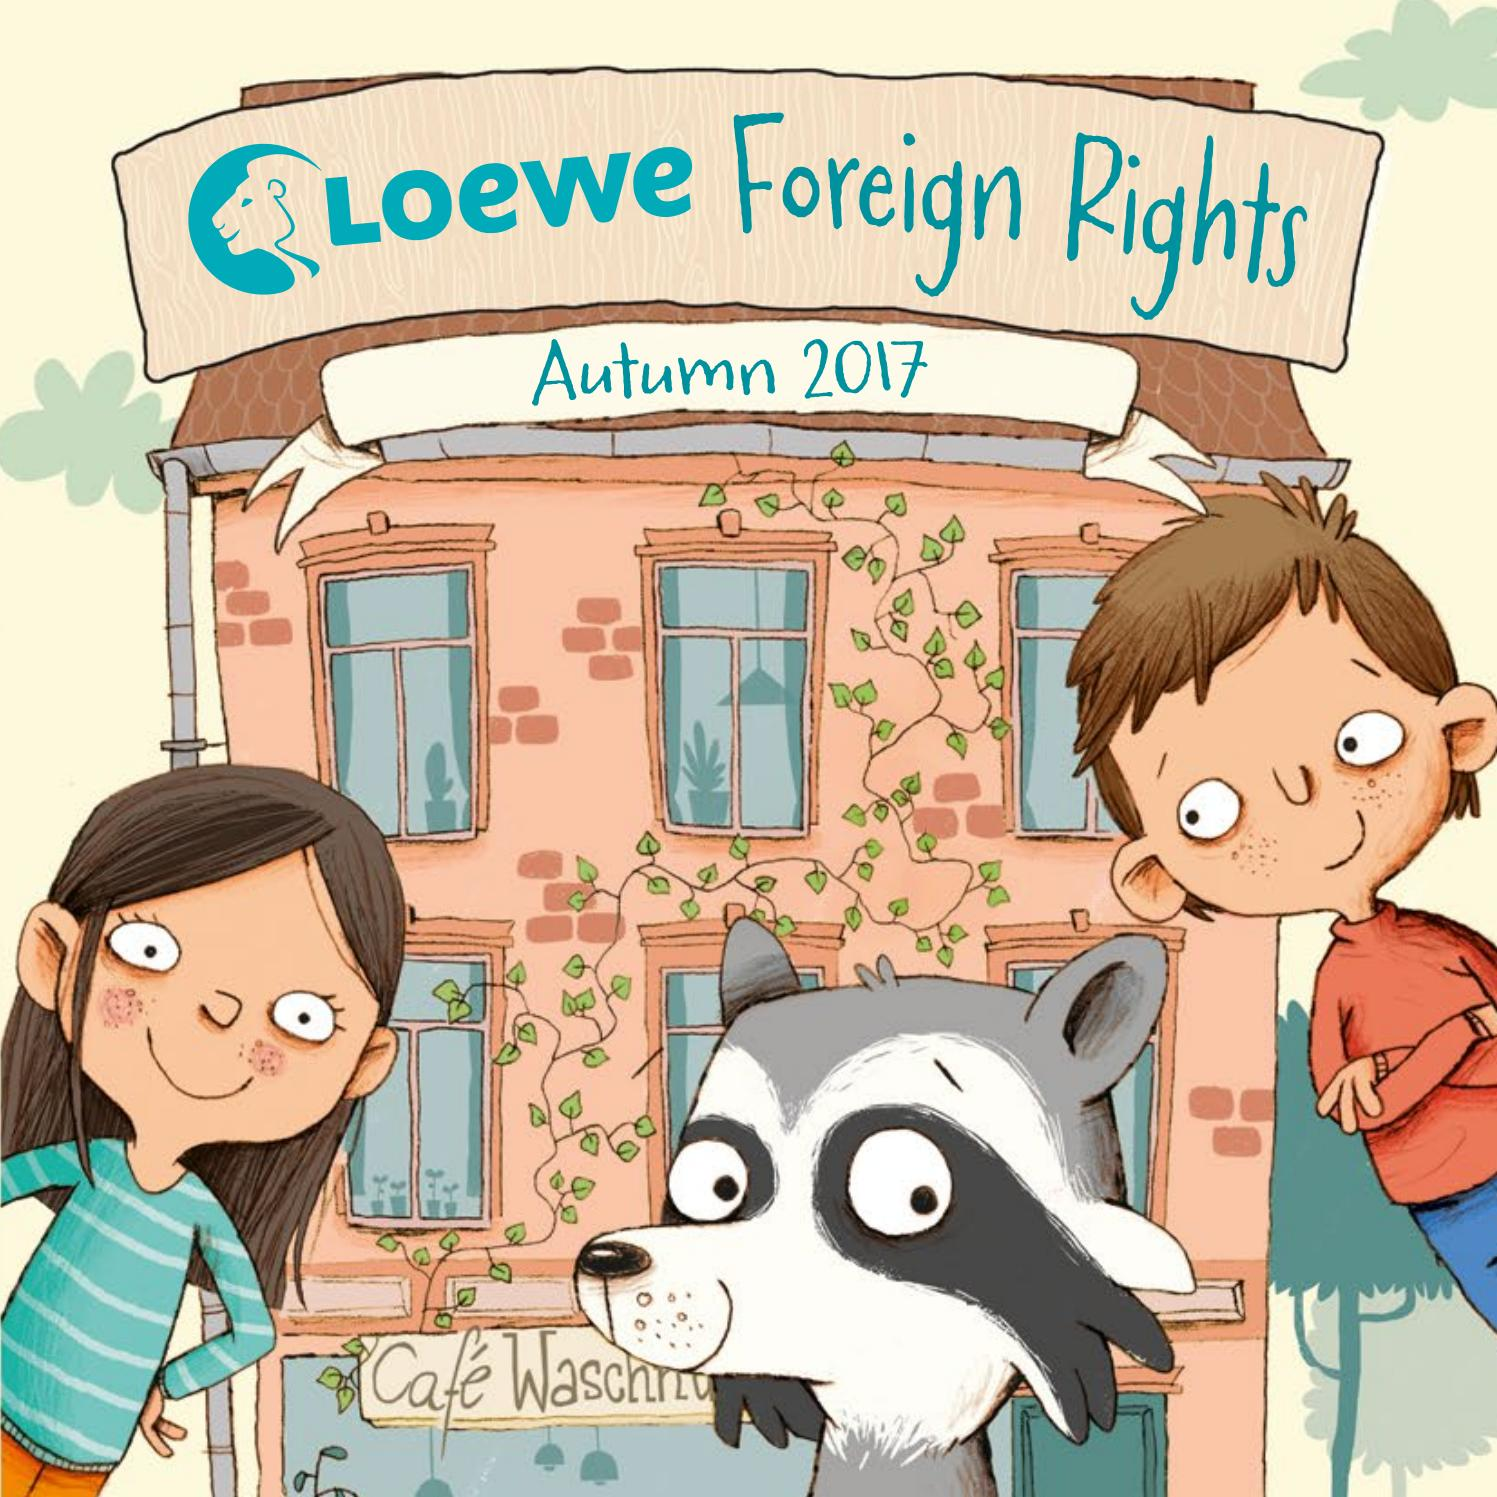 Bettwäsche Mia And Me Foreign Rights Catalogue Autumn 2017 By Loewe Verlag Issuu